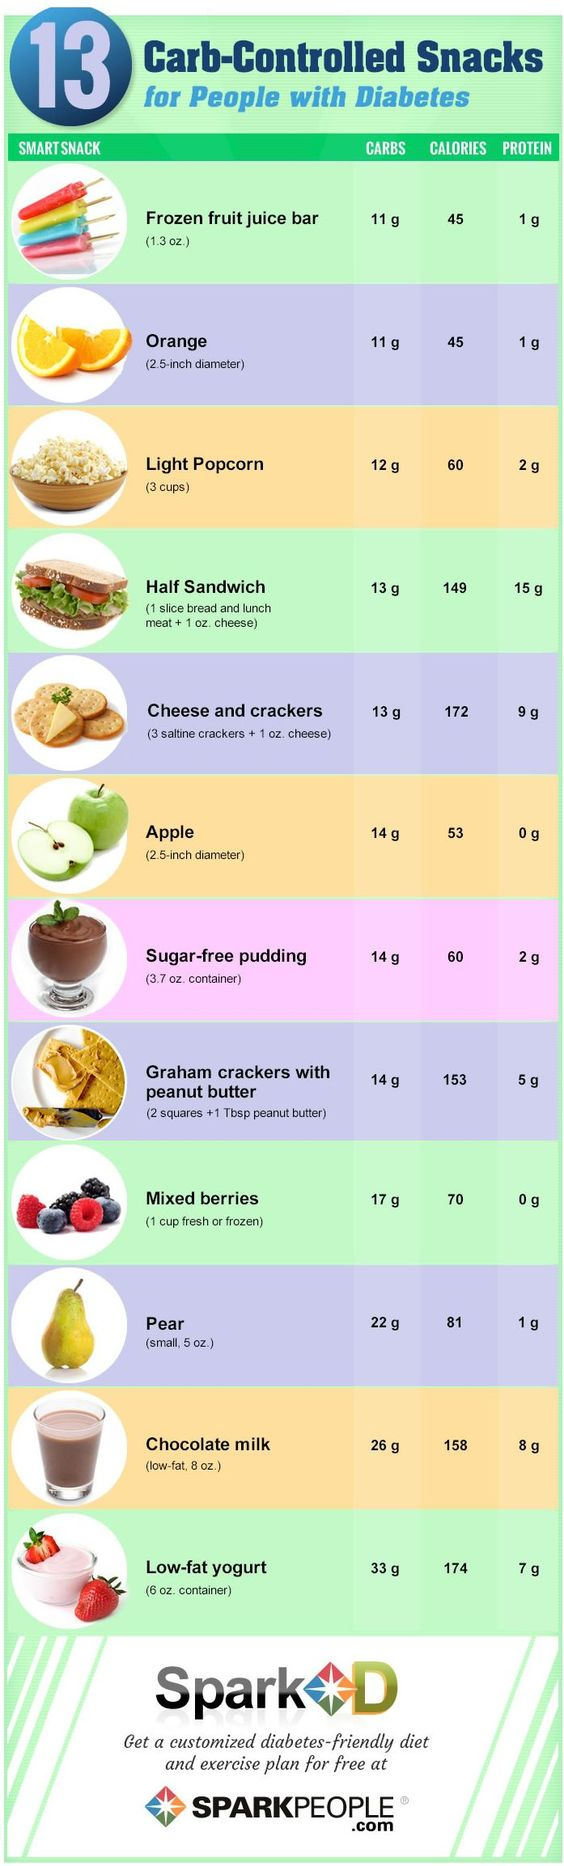 13 smart, carb-controlled snacks for people with diabetes   via @SparkPeople #food #diet #nutrition